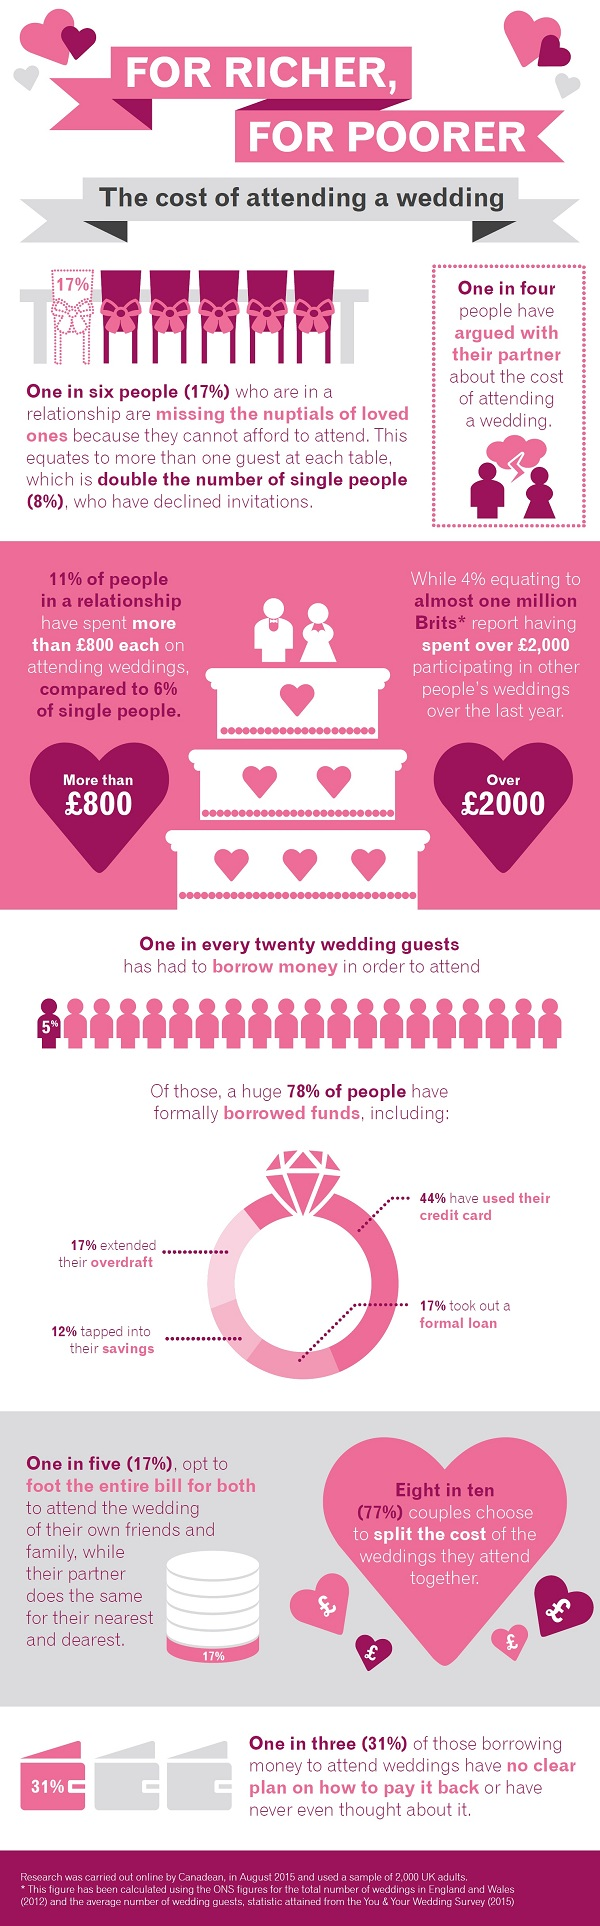 the cost of a wedding